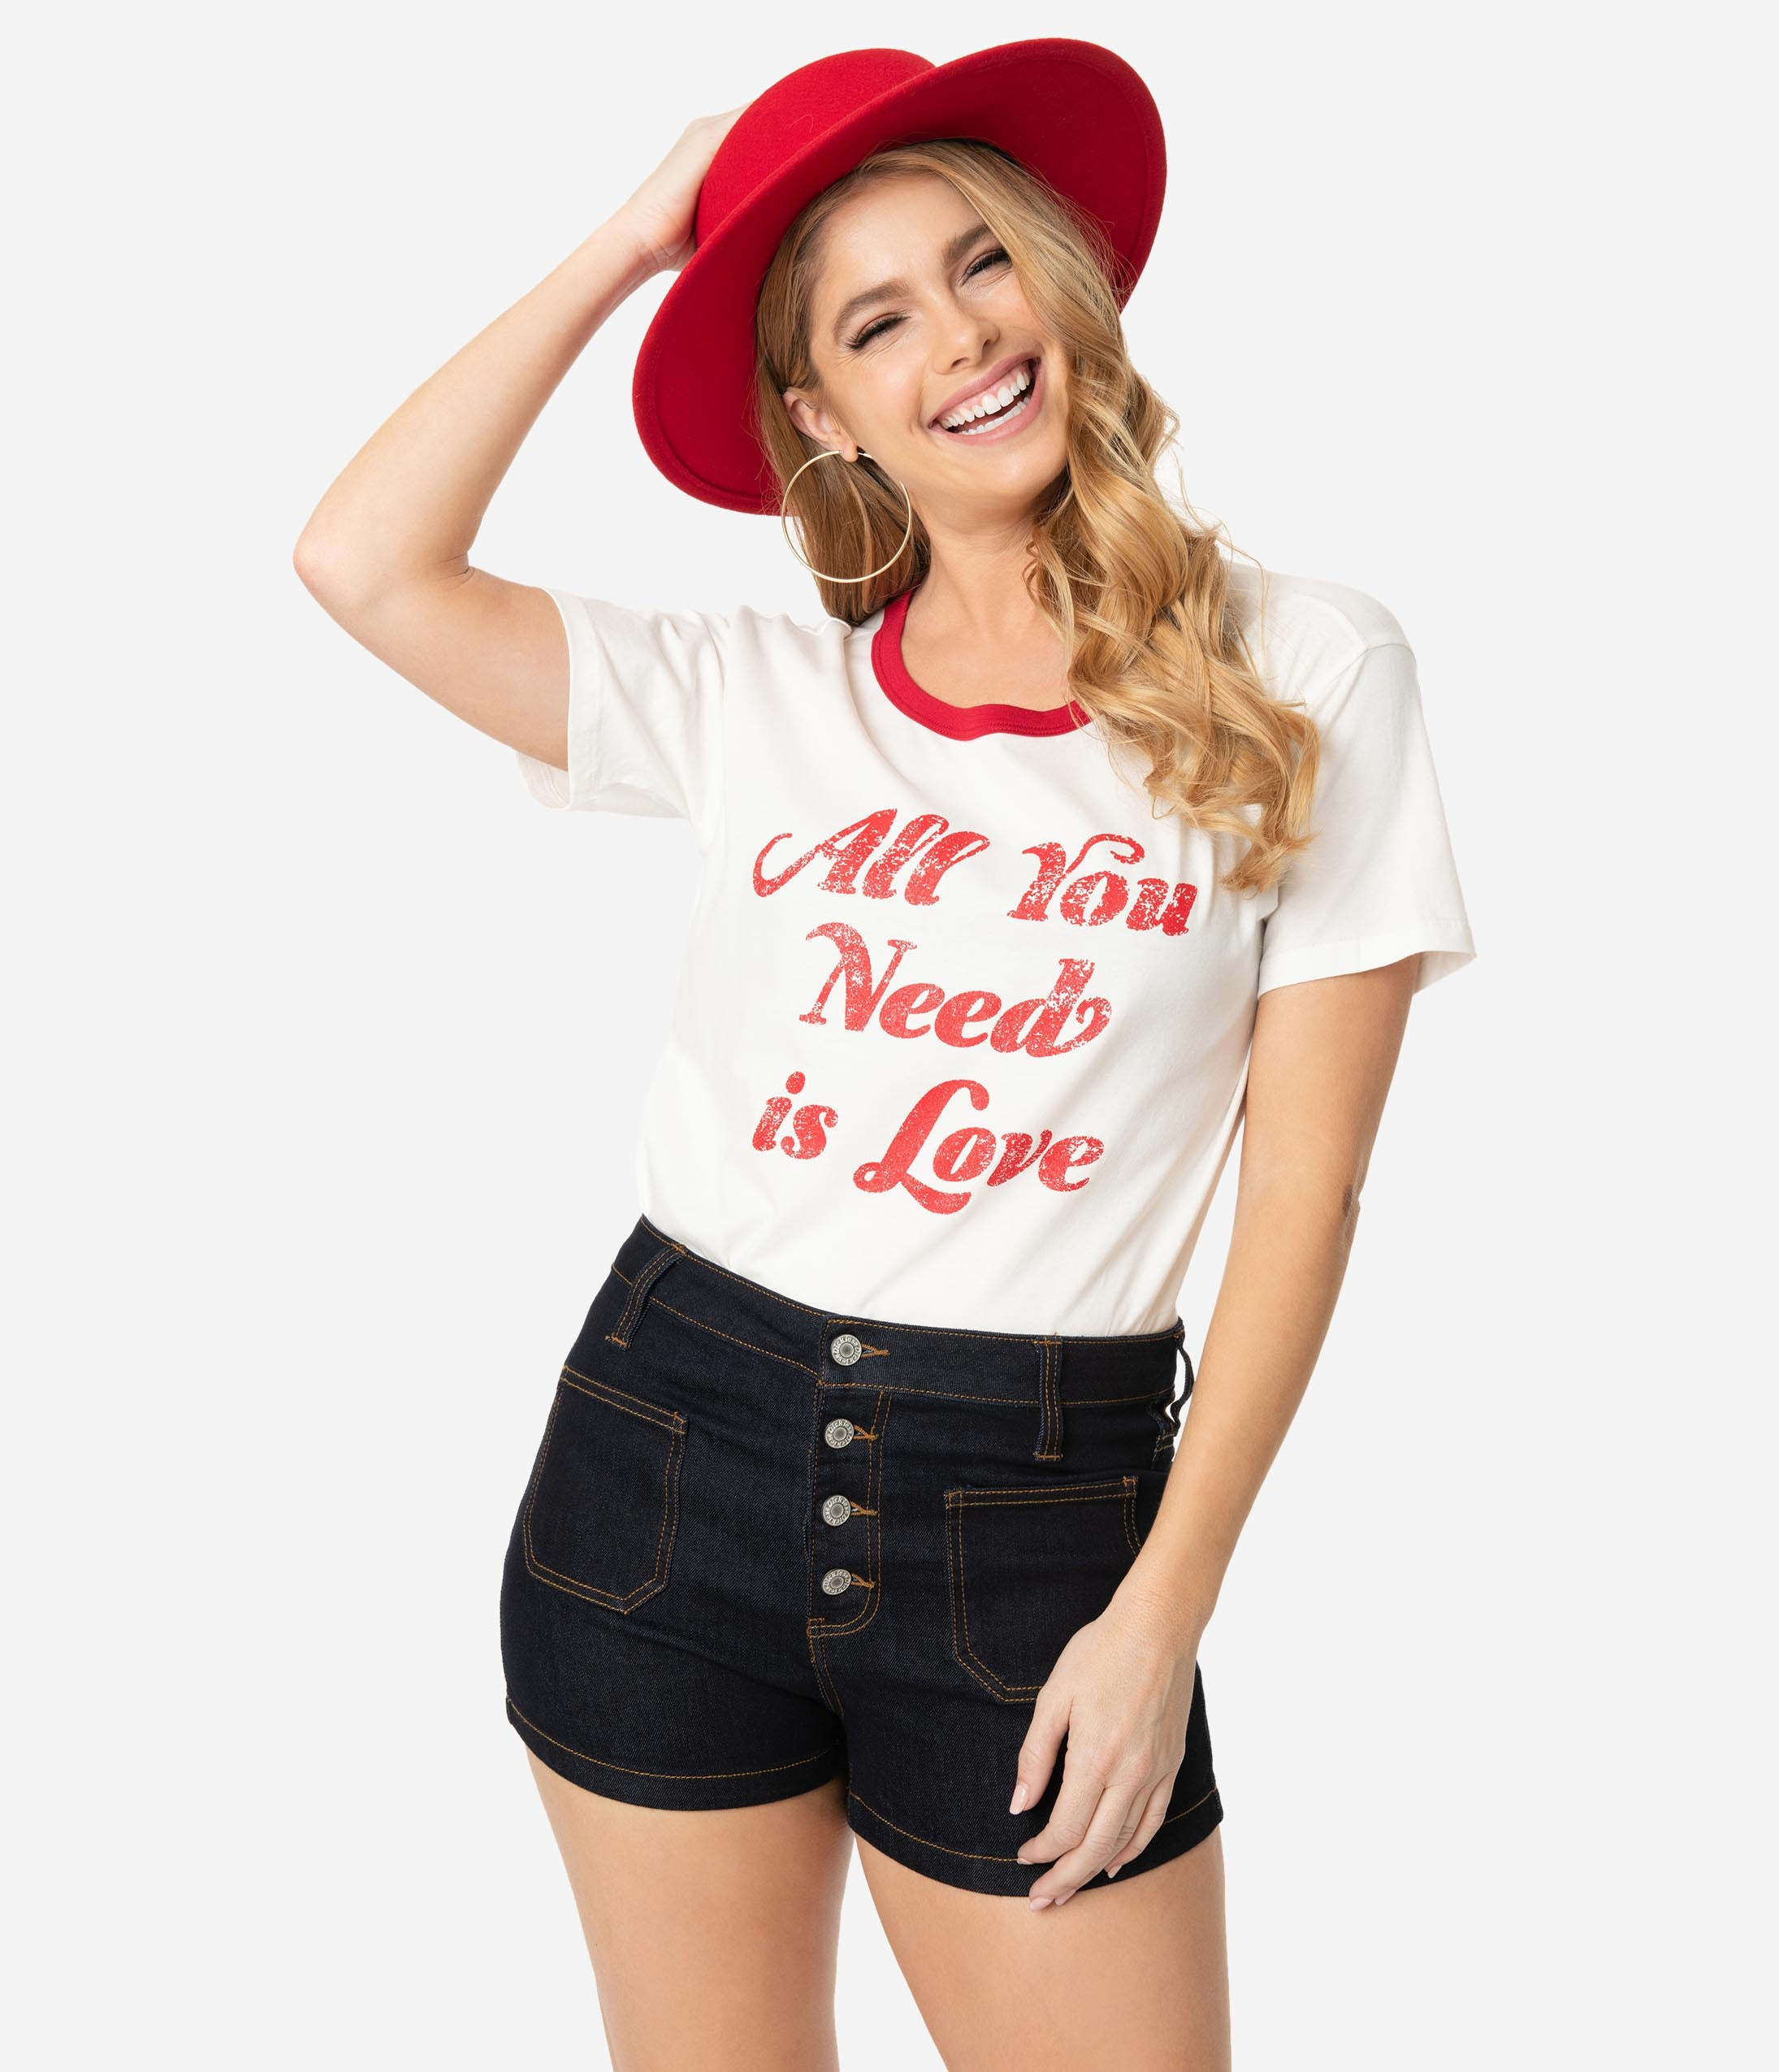 Valentines Day Dresses, Outfits, Lingerie | Red Dresses All You Need Is Love Faded Graphic Unisex Tee $28.00 AT vintagedancer.com